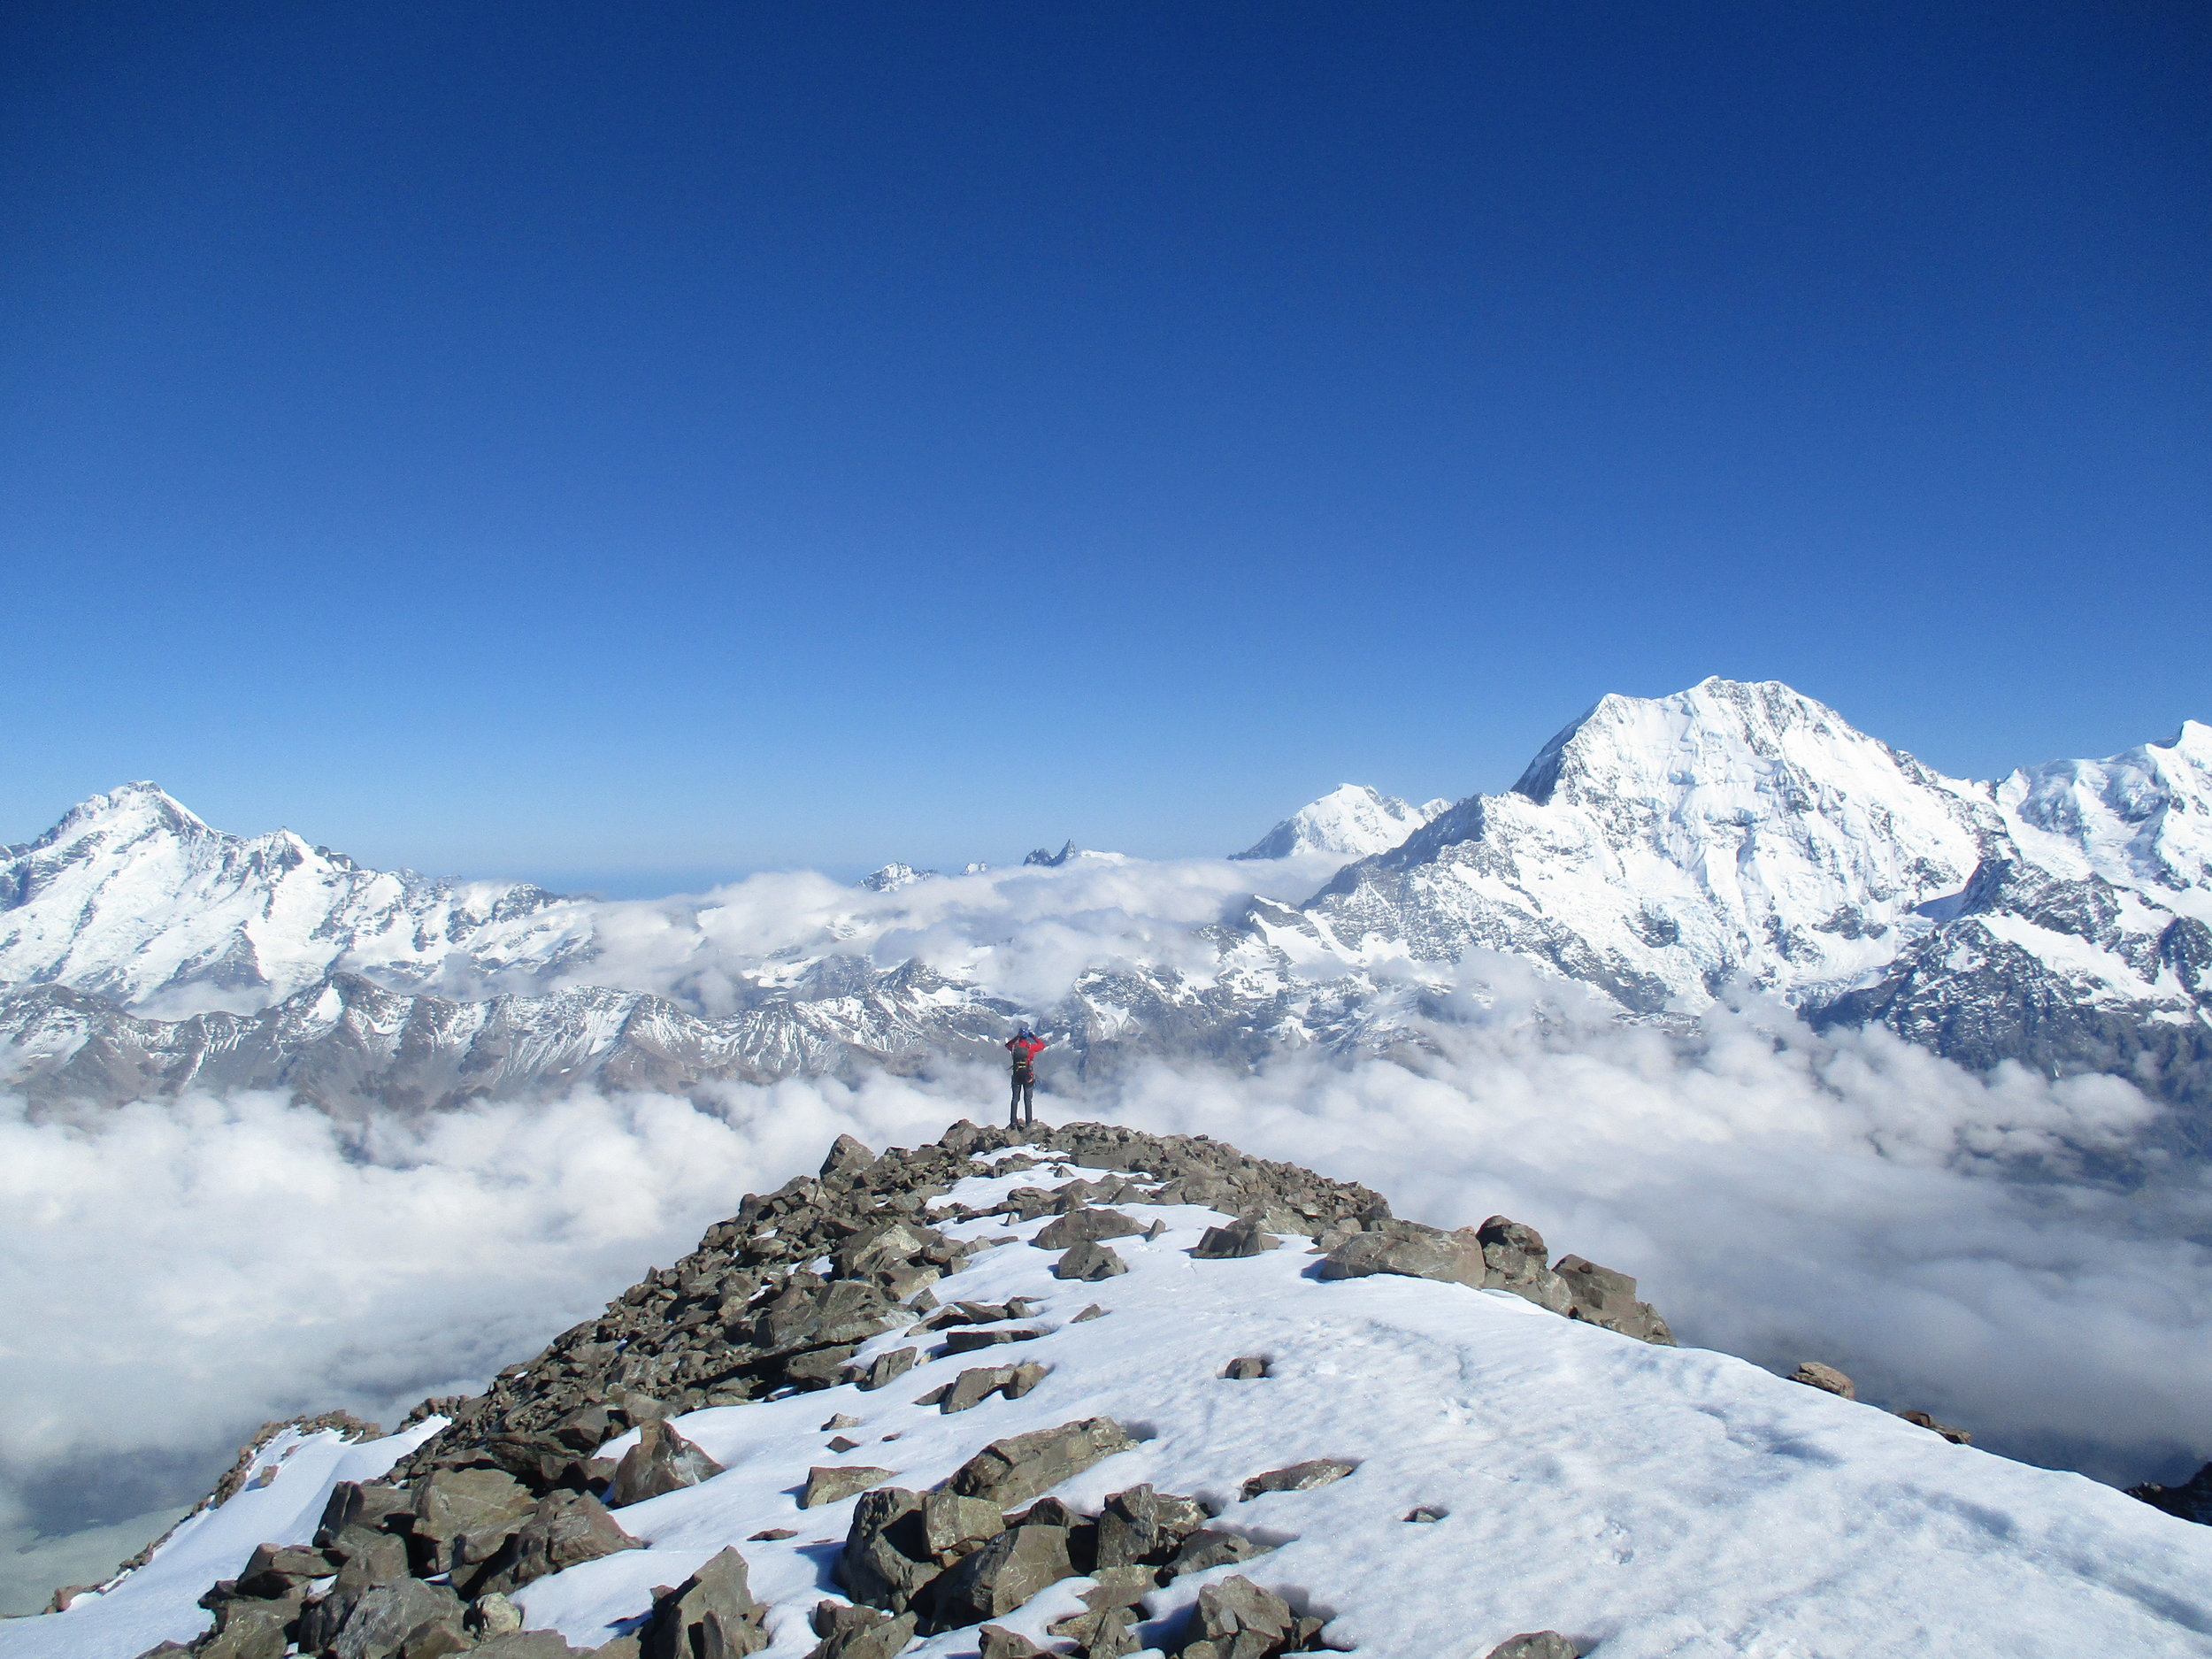 Mount Sefton , La Perouse and Mount Cook from the summit of the Nuns Veil.